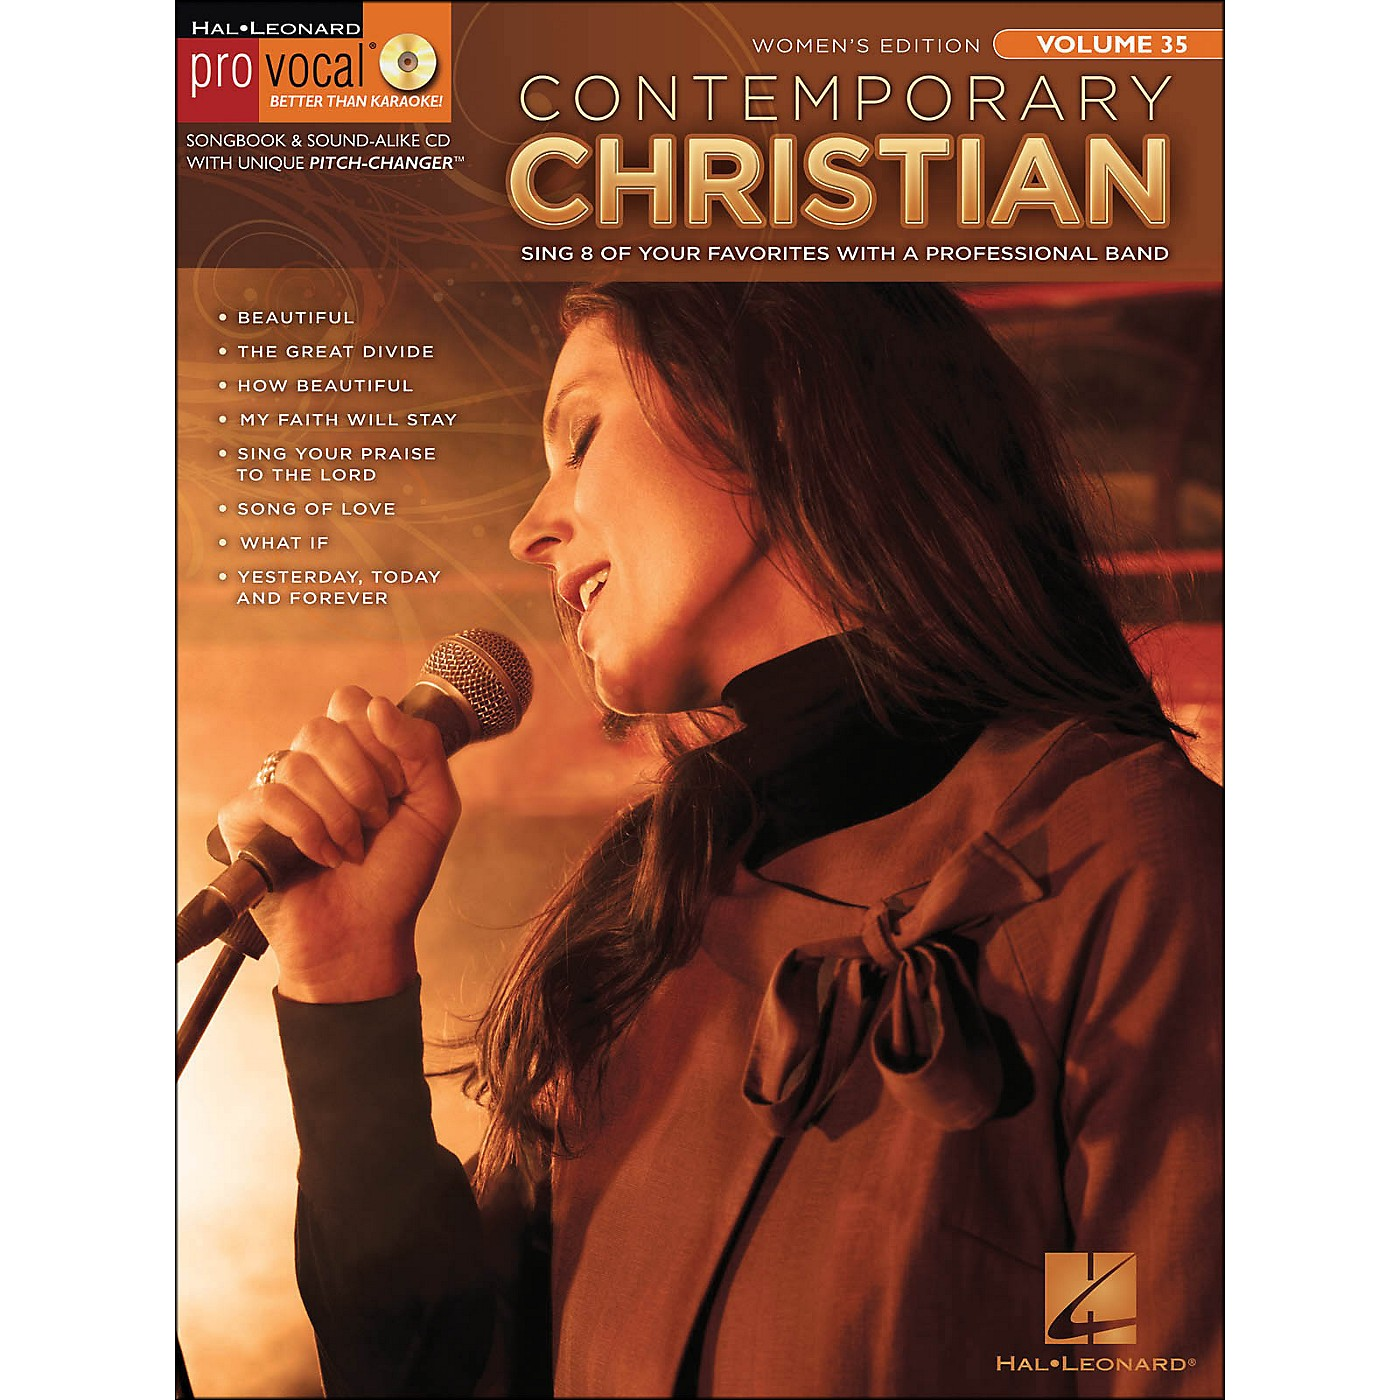 Hal Leonard Contemporary Christian - Pro Vocal Songbook Women's Edition Volume 35 Book/CD thumbnail